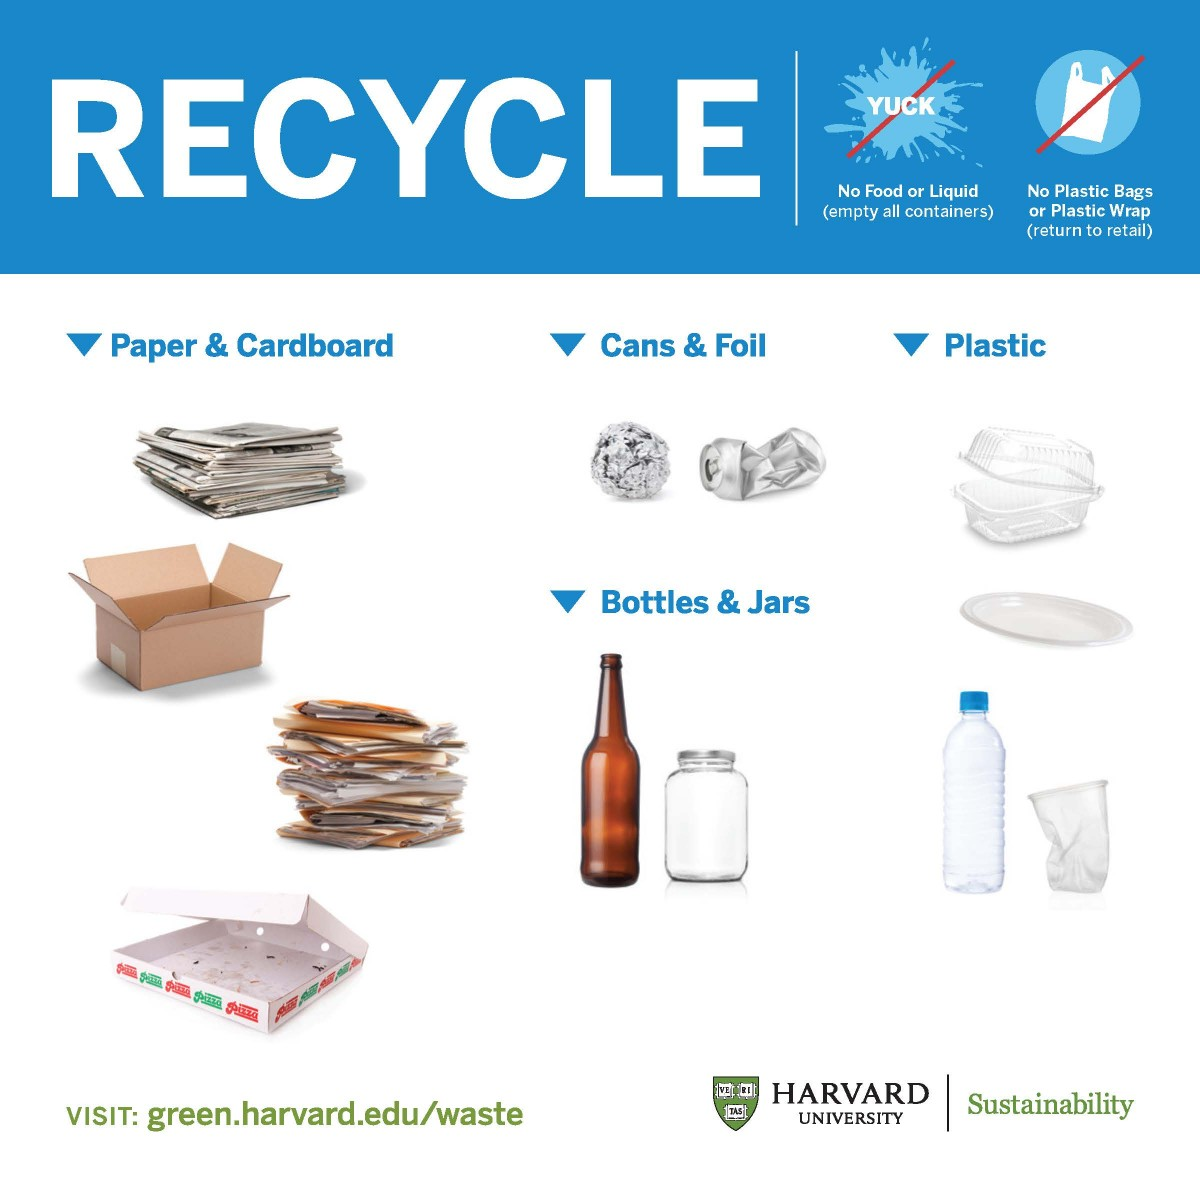 image about Printable Recycling Signs titled Signage Sustainability at Harvard